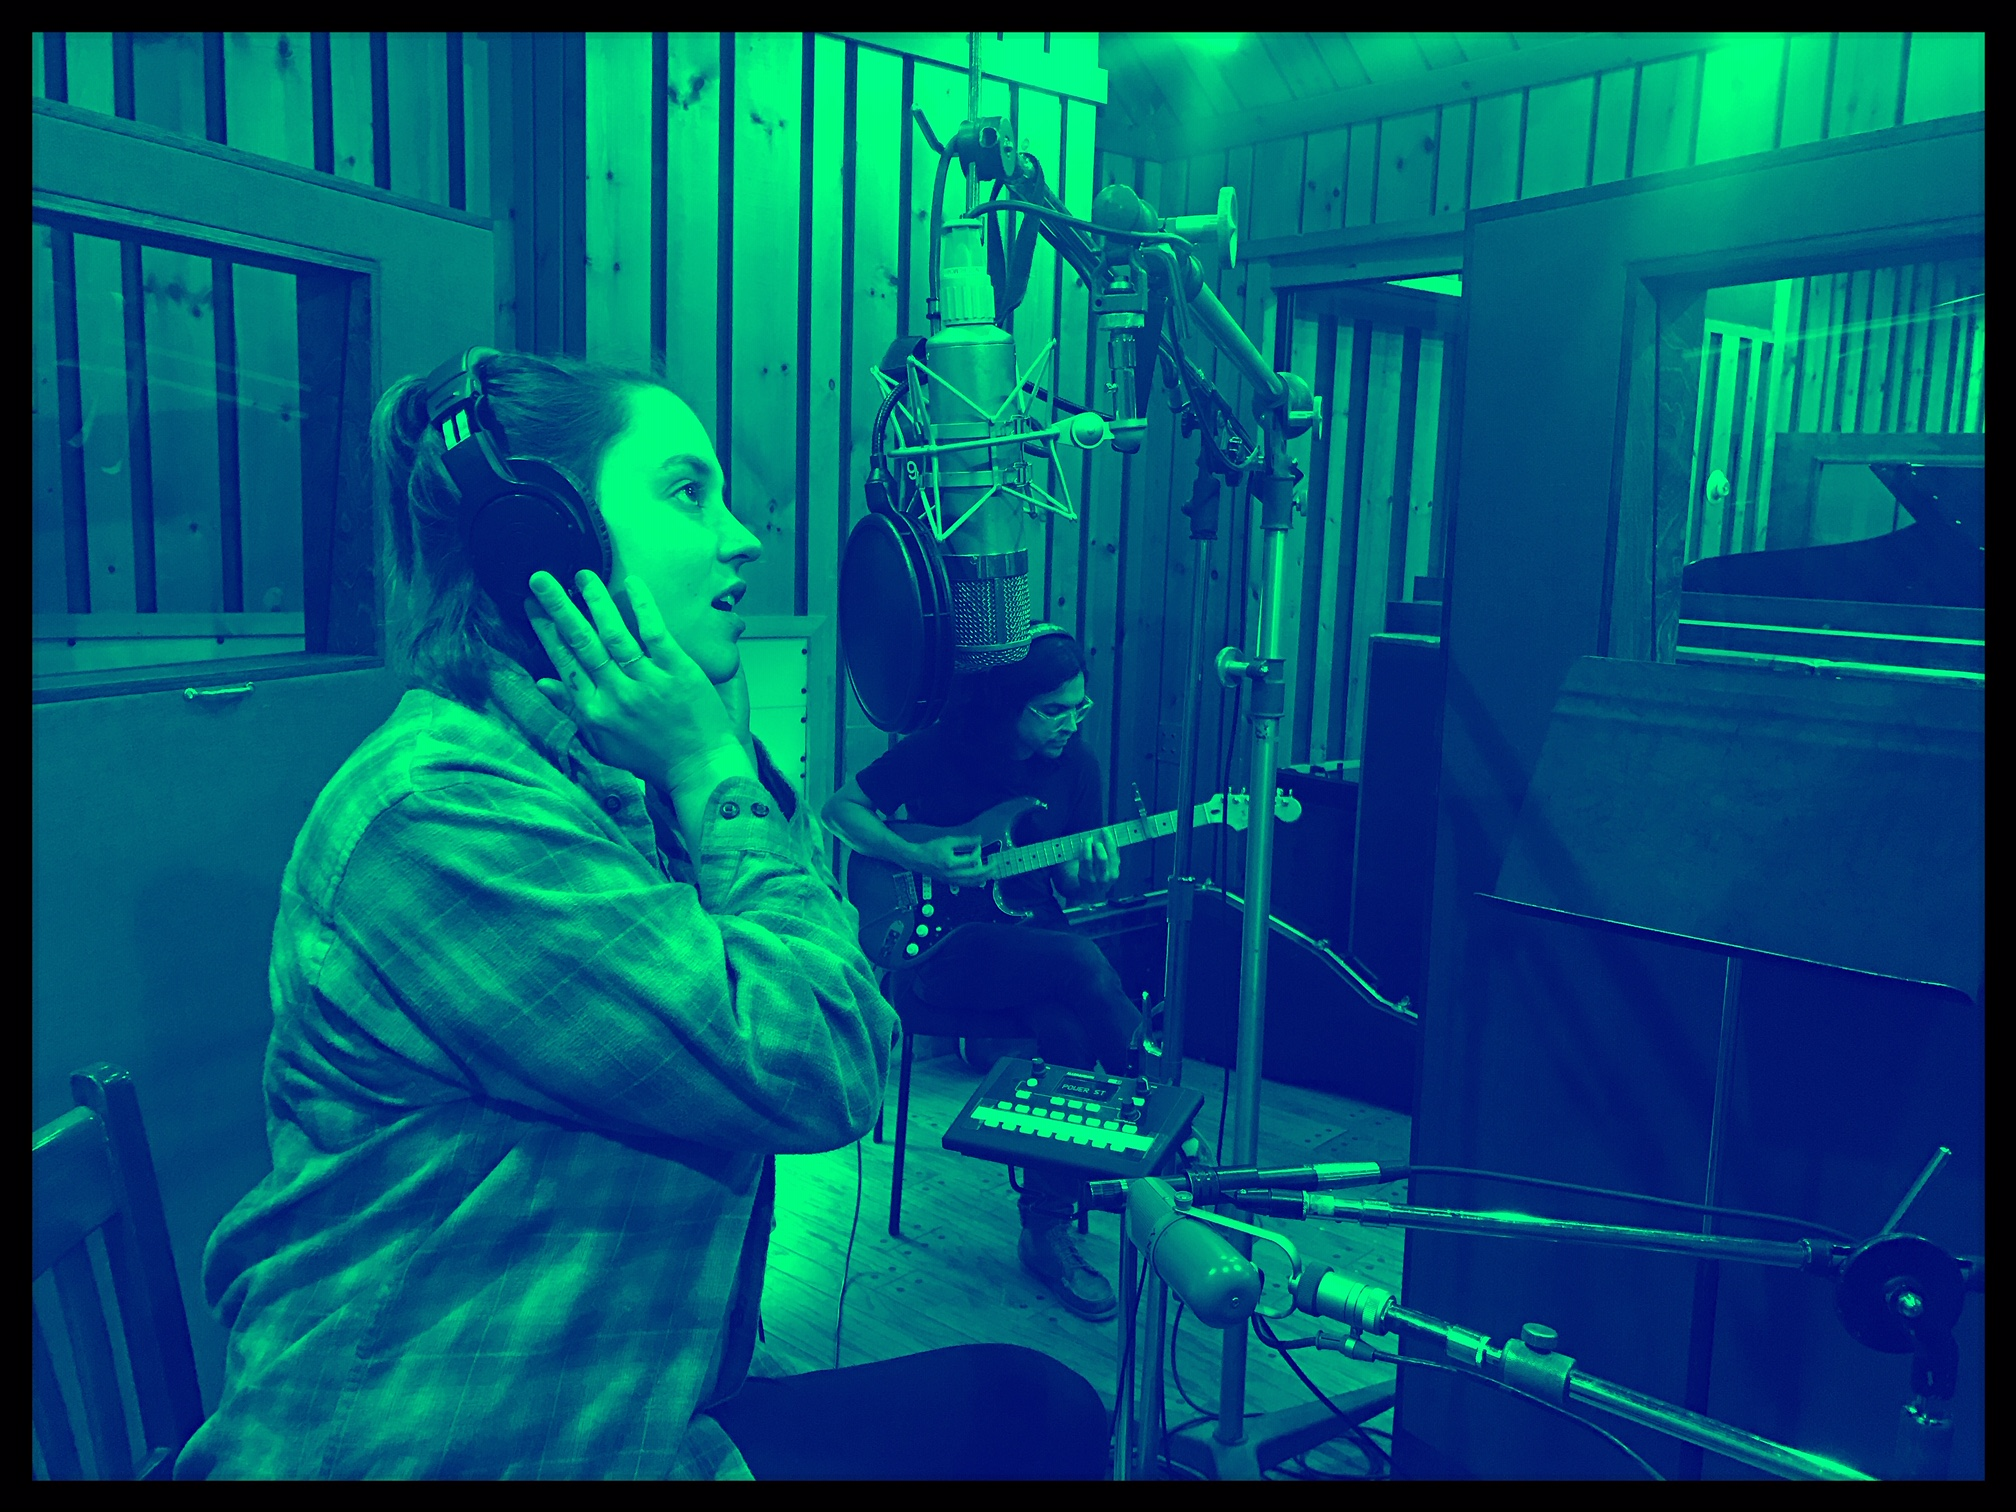 Jenna recording vocals, Kenny in the background